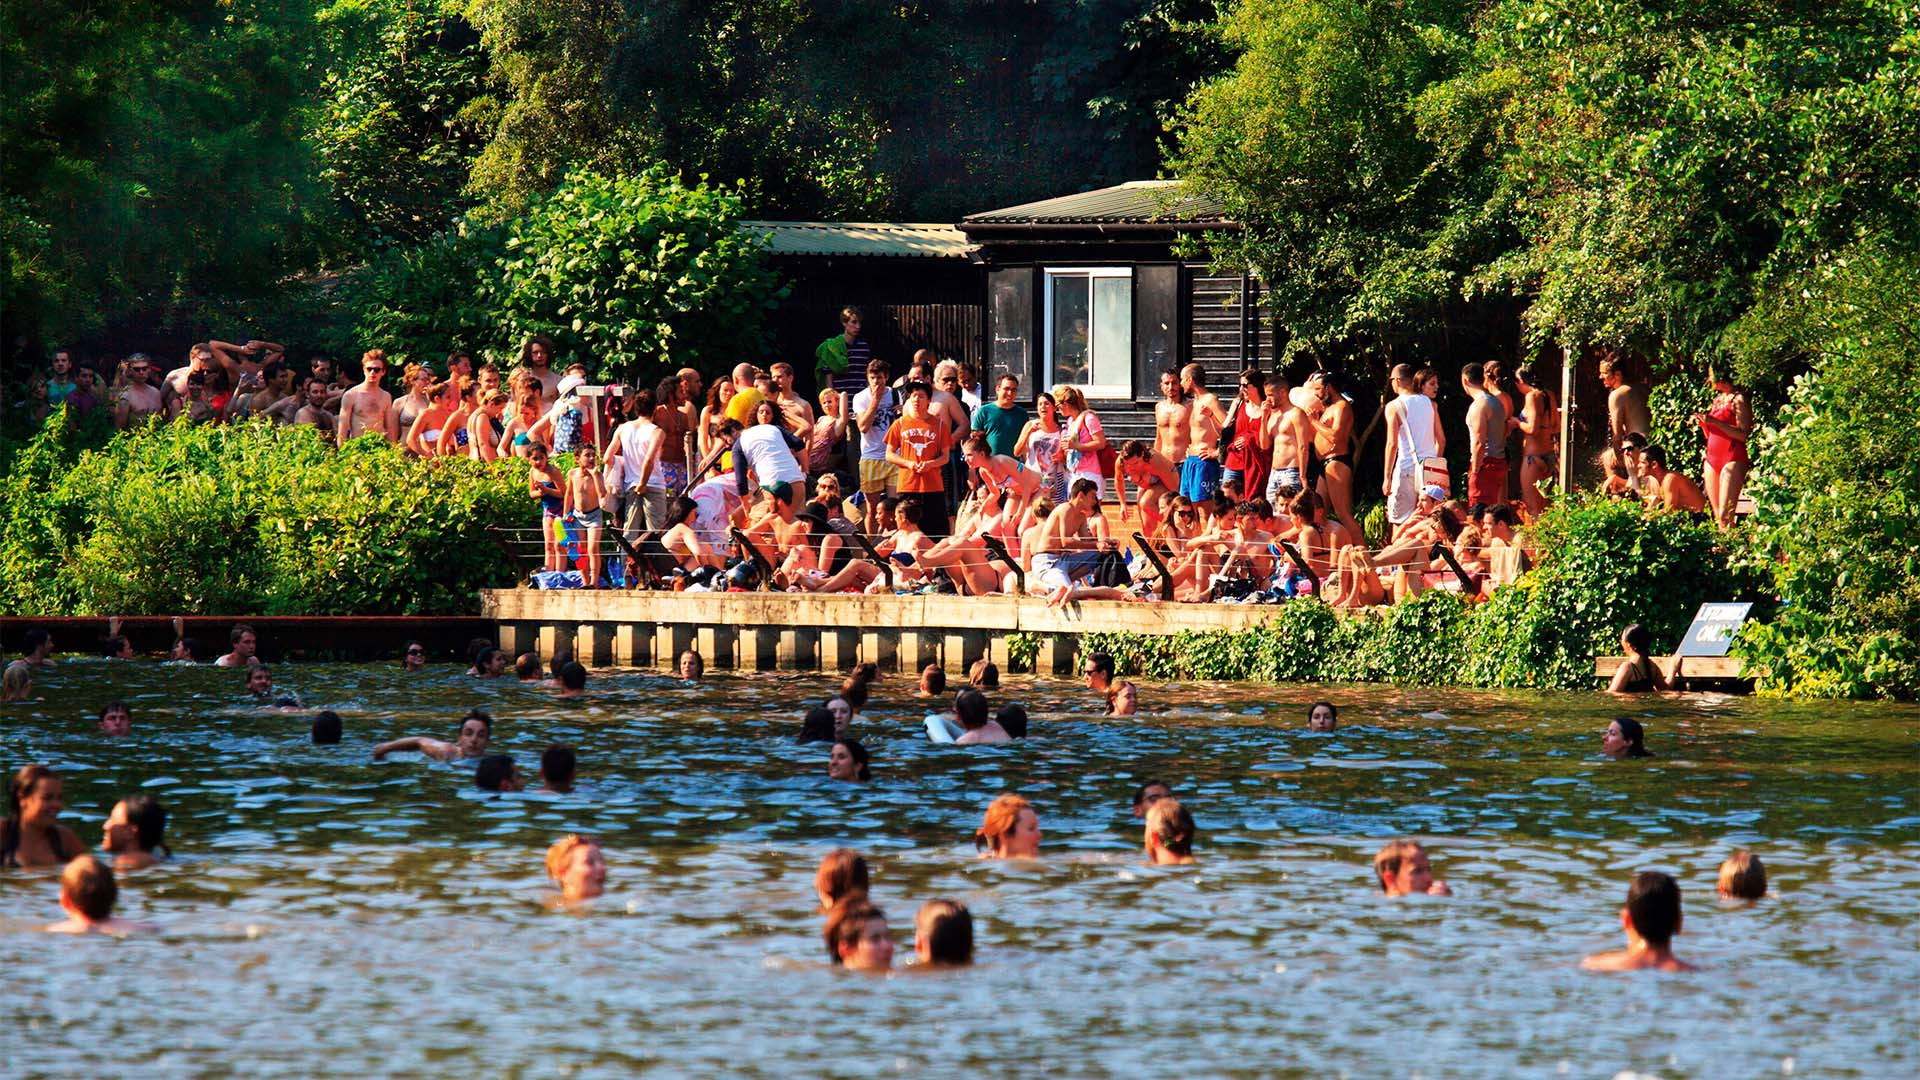 Swimmers at Hampstead Mixed Pond, north London